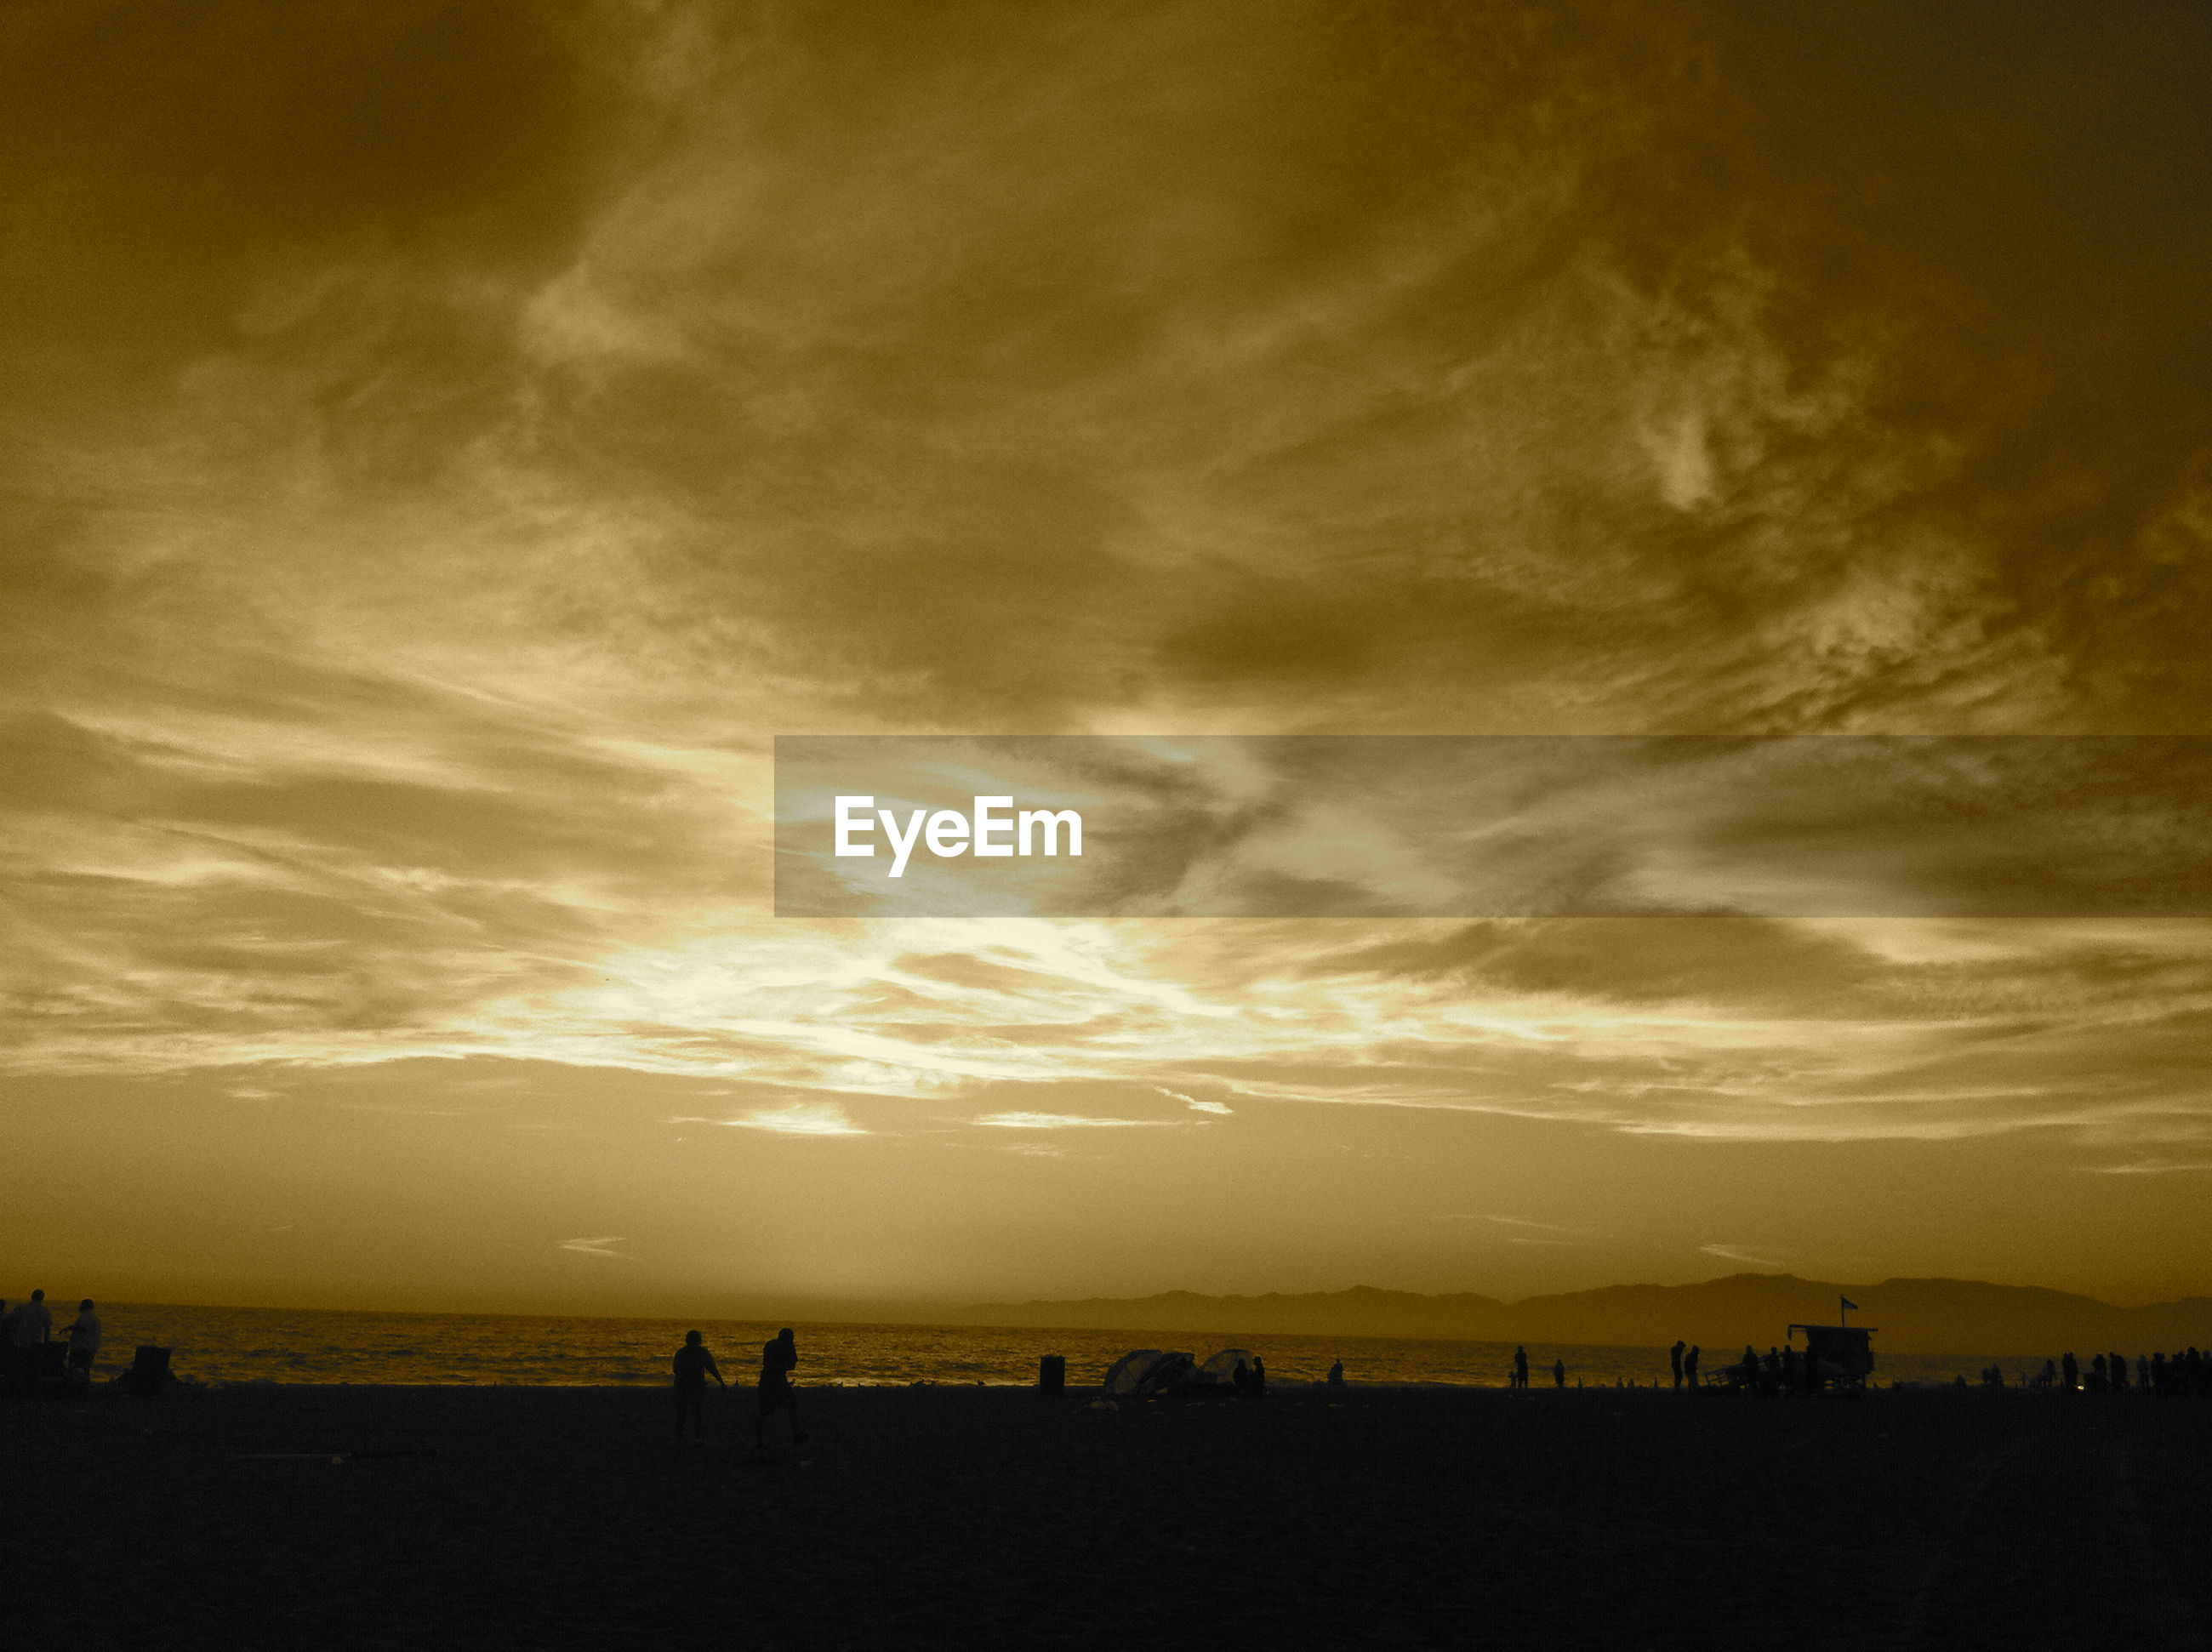 sea, beach, sunset, sky, water, horizon over water, silhouette, scenics, beauty in nature, shore, tranquil scene, cloud - sky, tranquility, nature, idyllic, vacations, sand, leisure activity, lifestyles